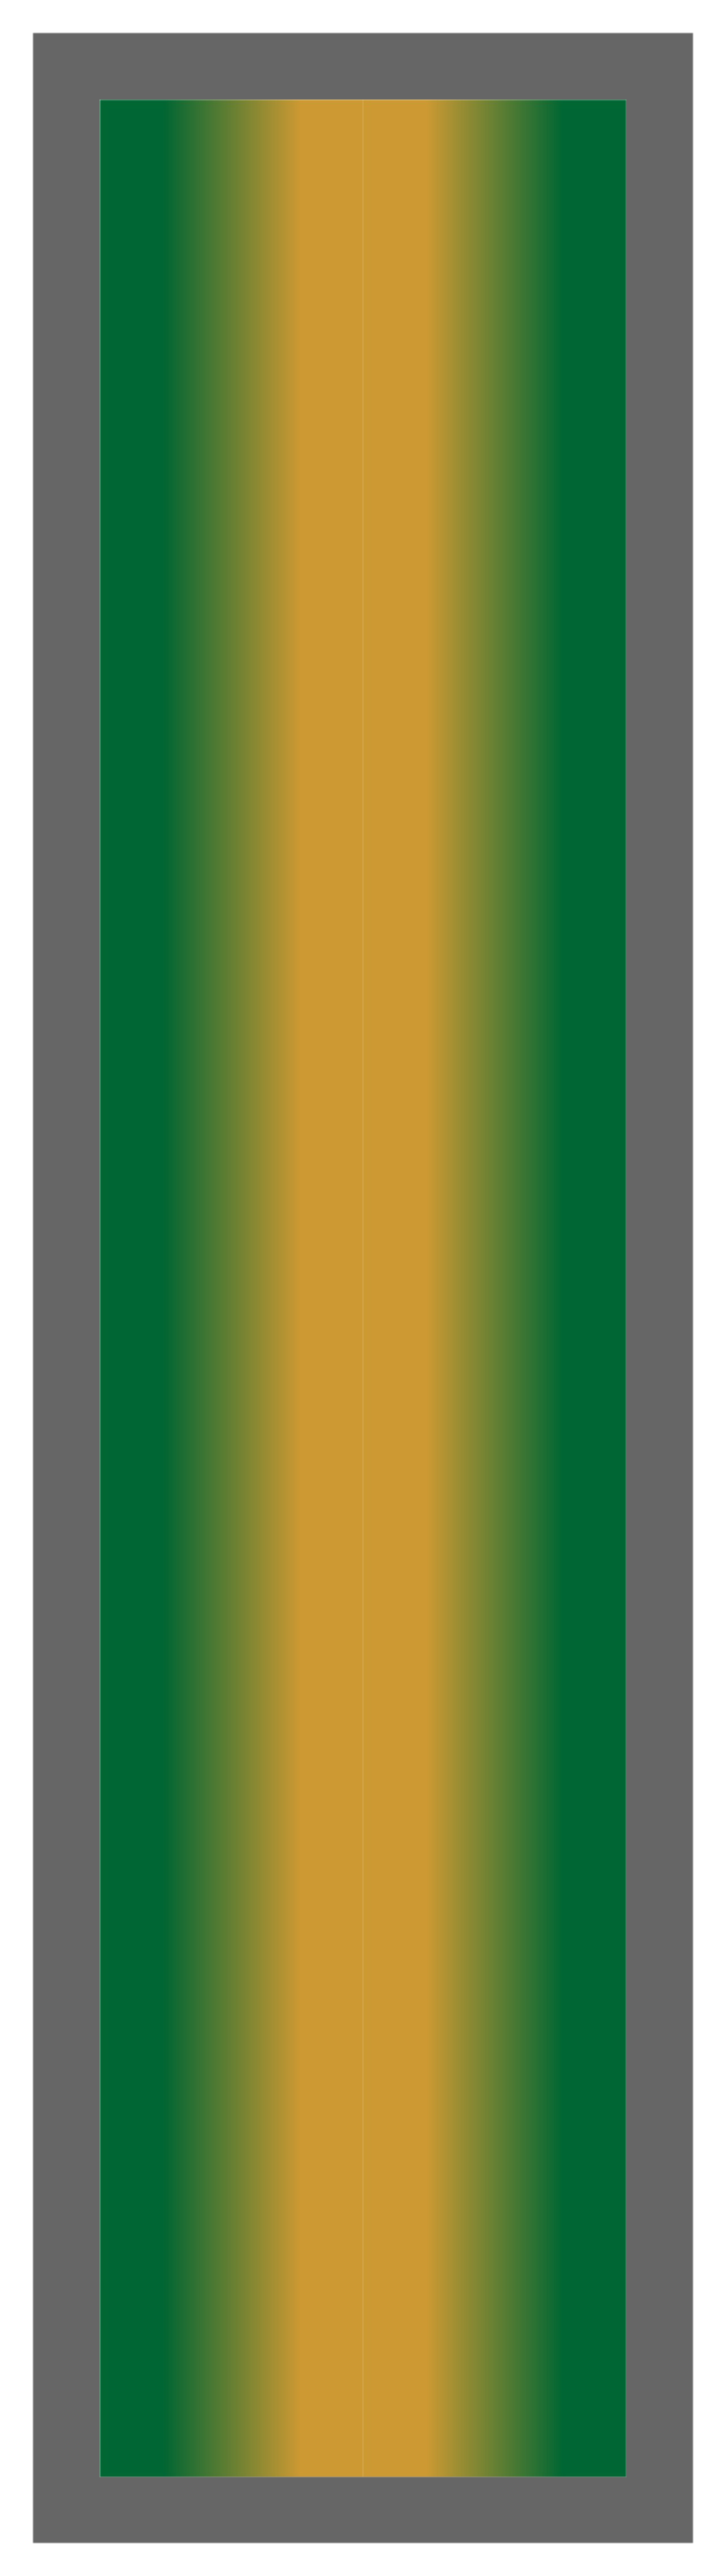 Forest Green-Gold-Forest Green Ombre Stripe